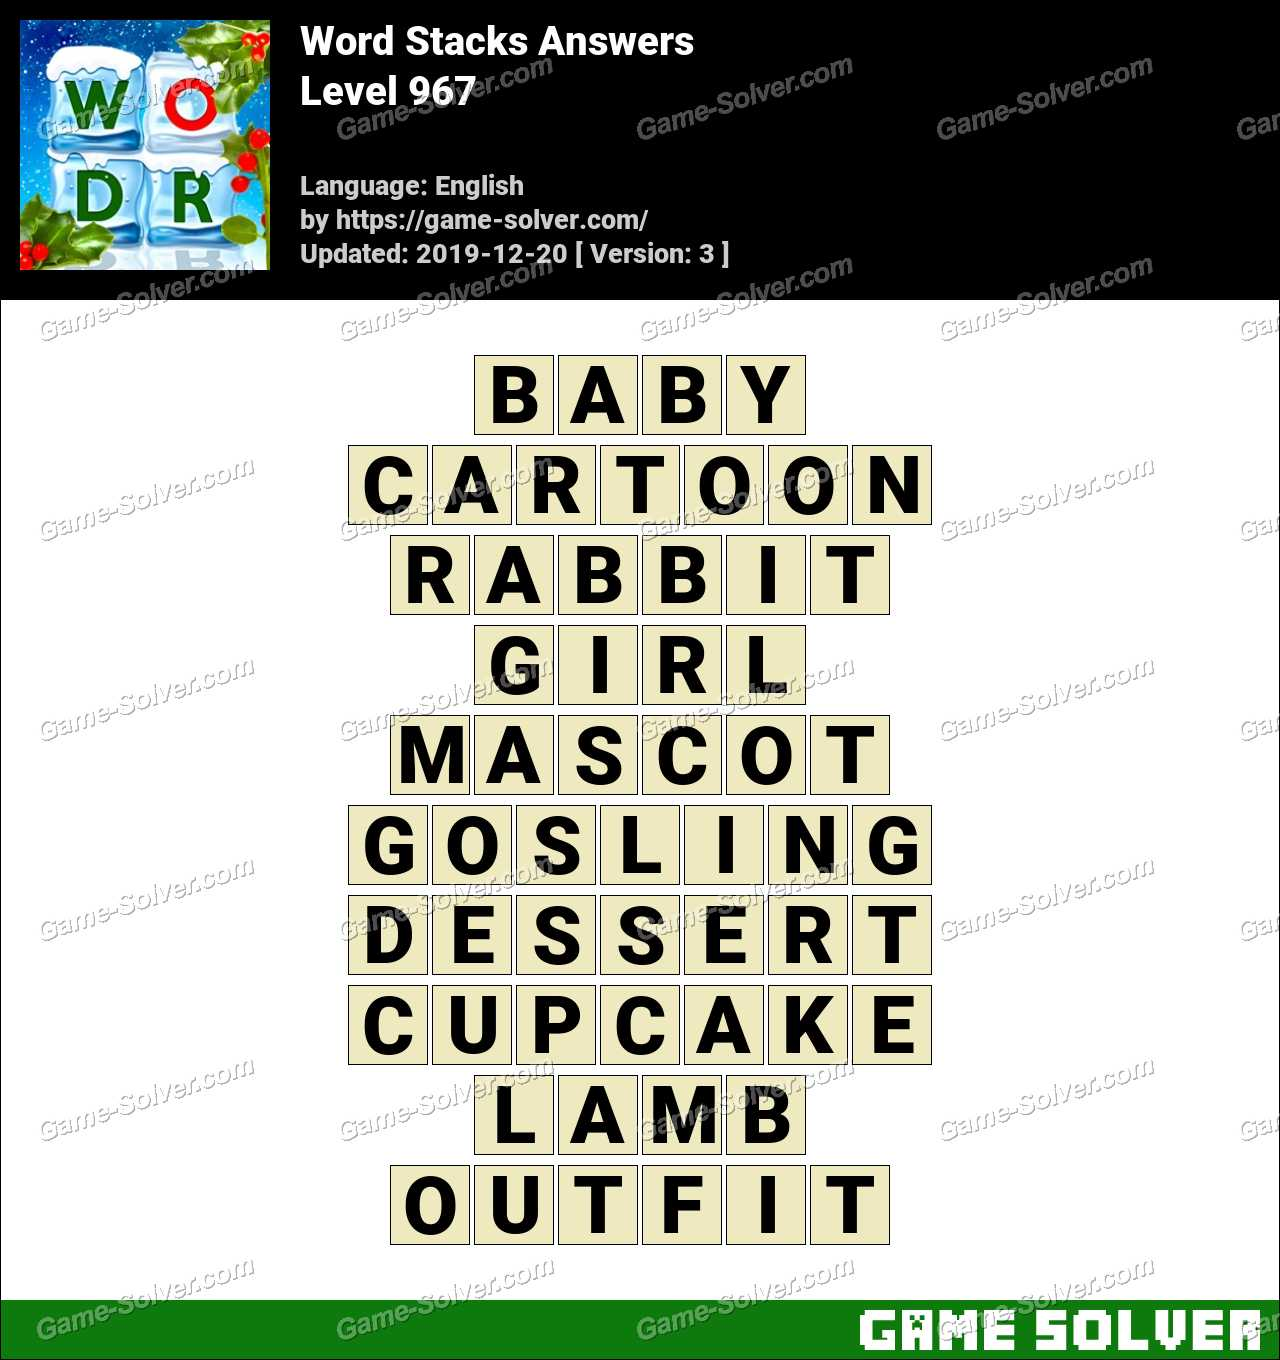 Word Stacks Level 967 Answers